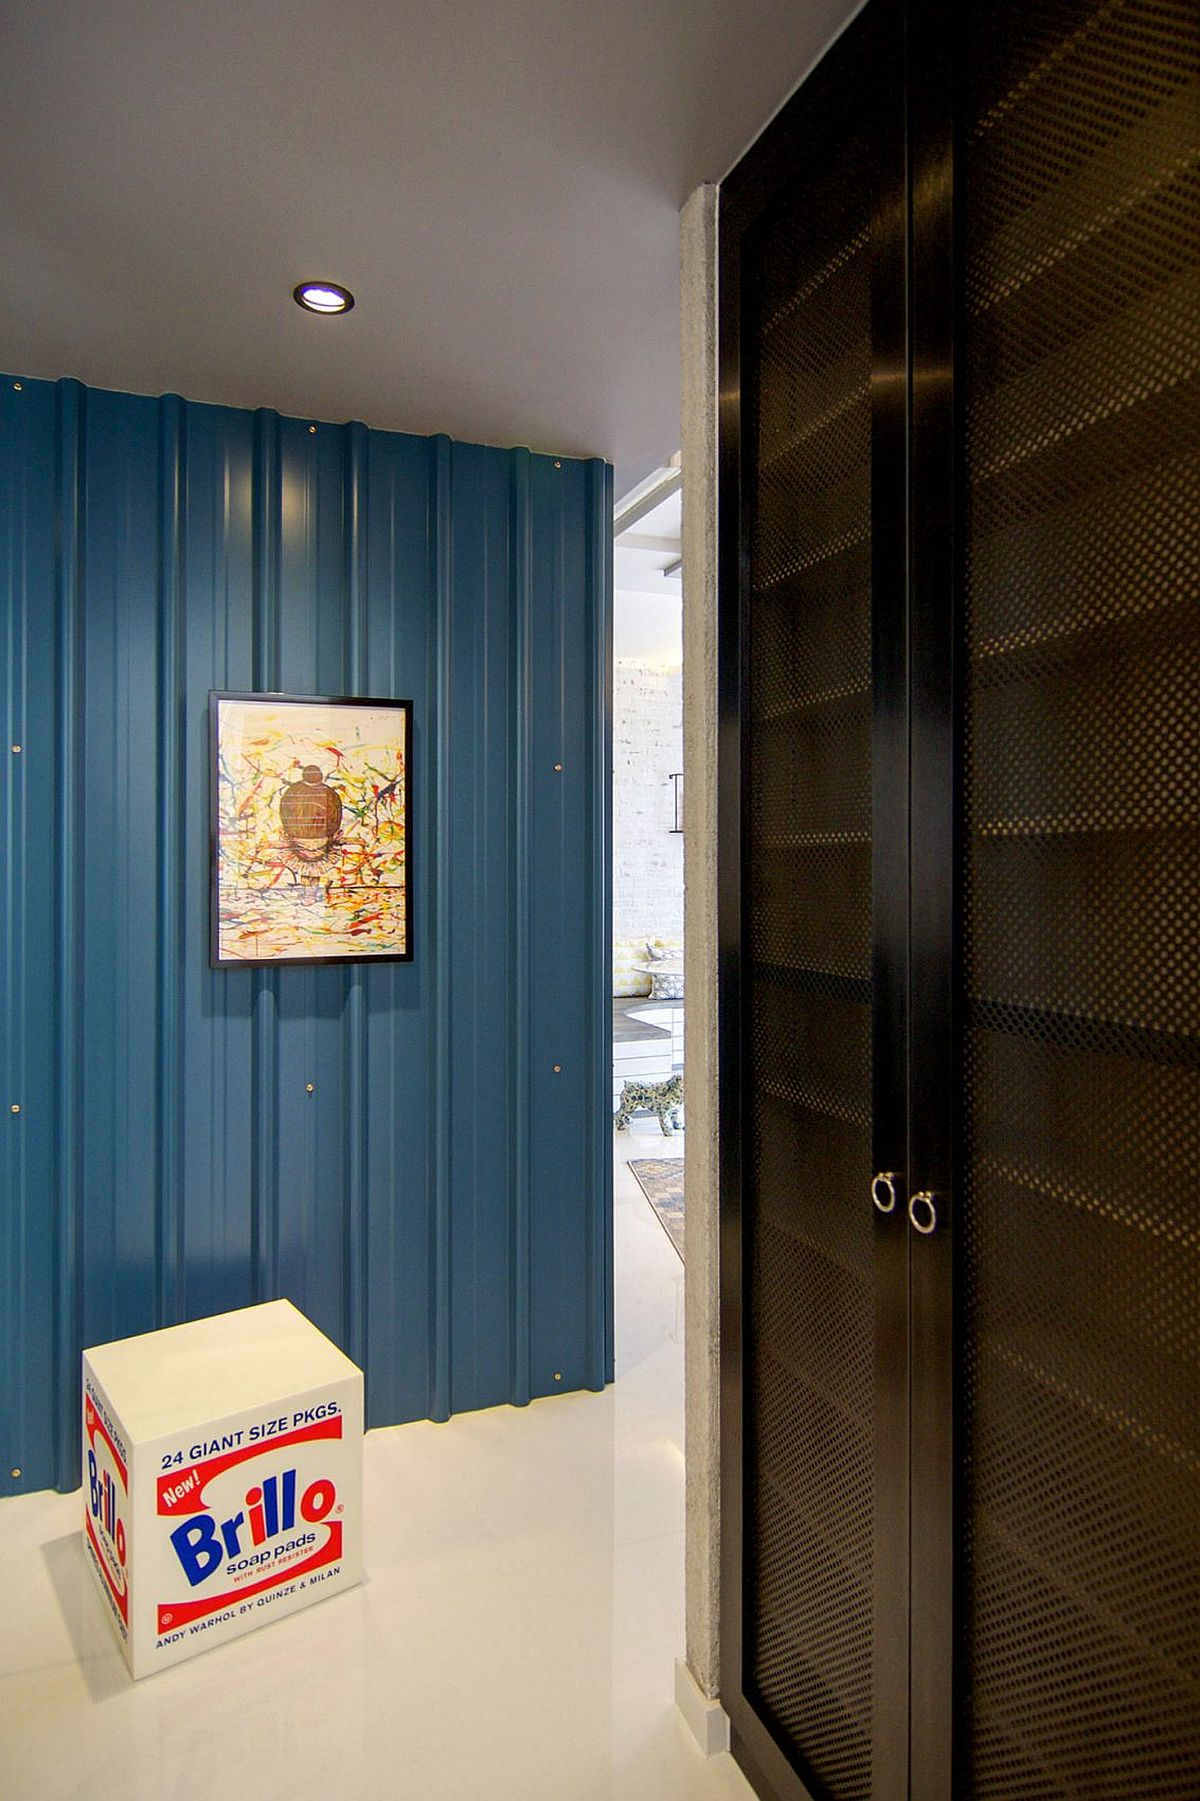 Blue metallic claddin on the wall welcomes you to the colorful home in Singapore